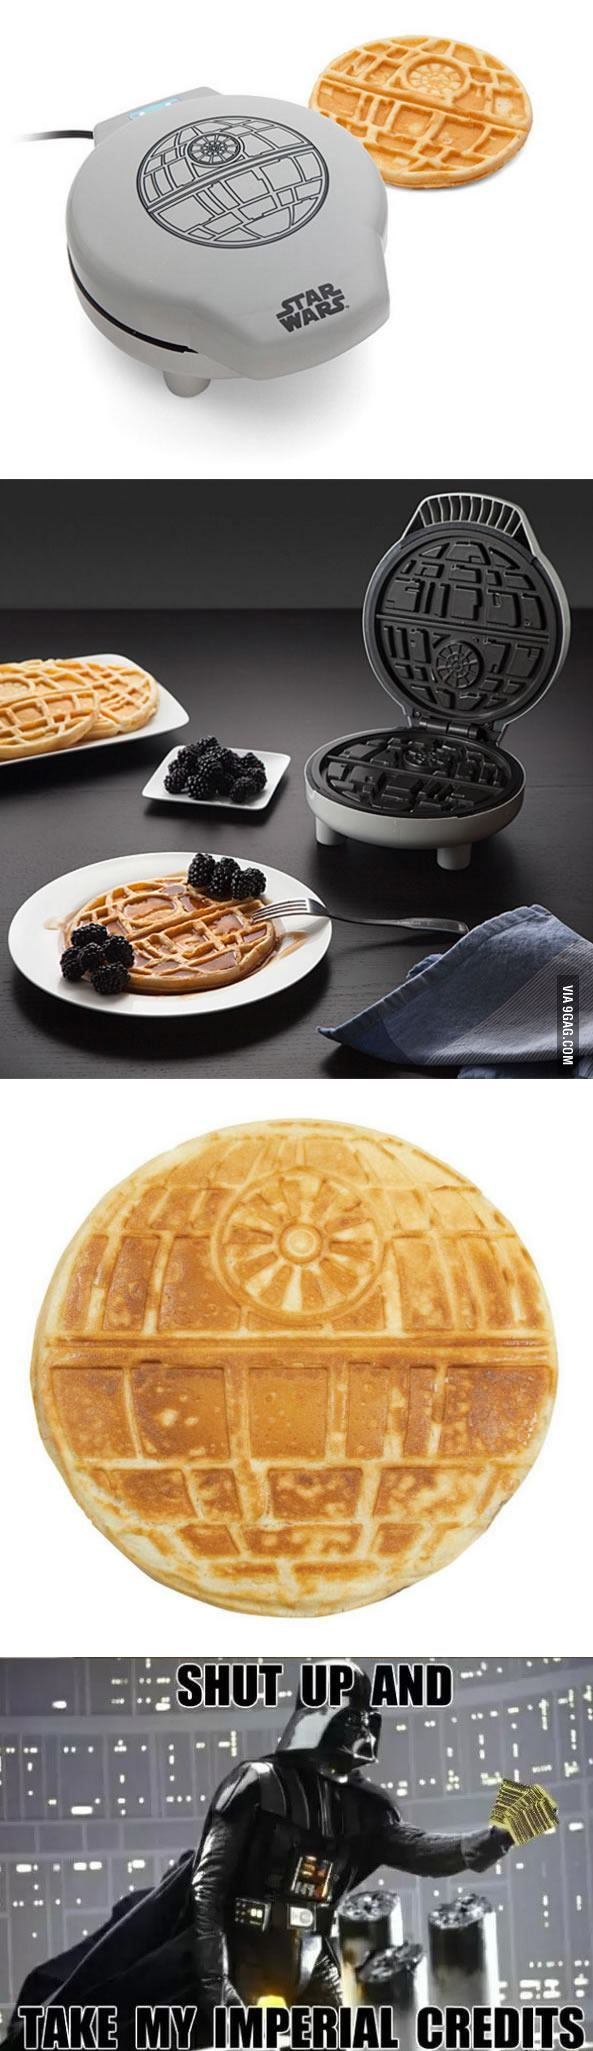 Star Wars Waffle Maker That Bakes Death Stars For Breakfast - 9GAG